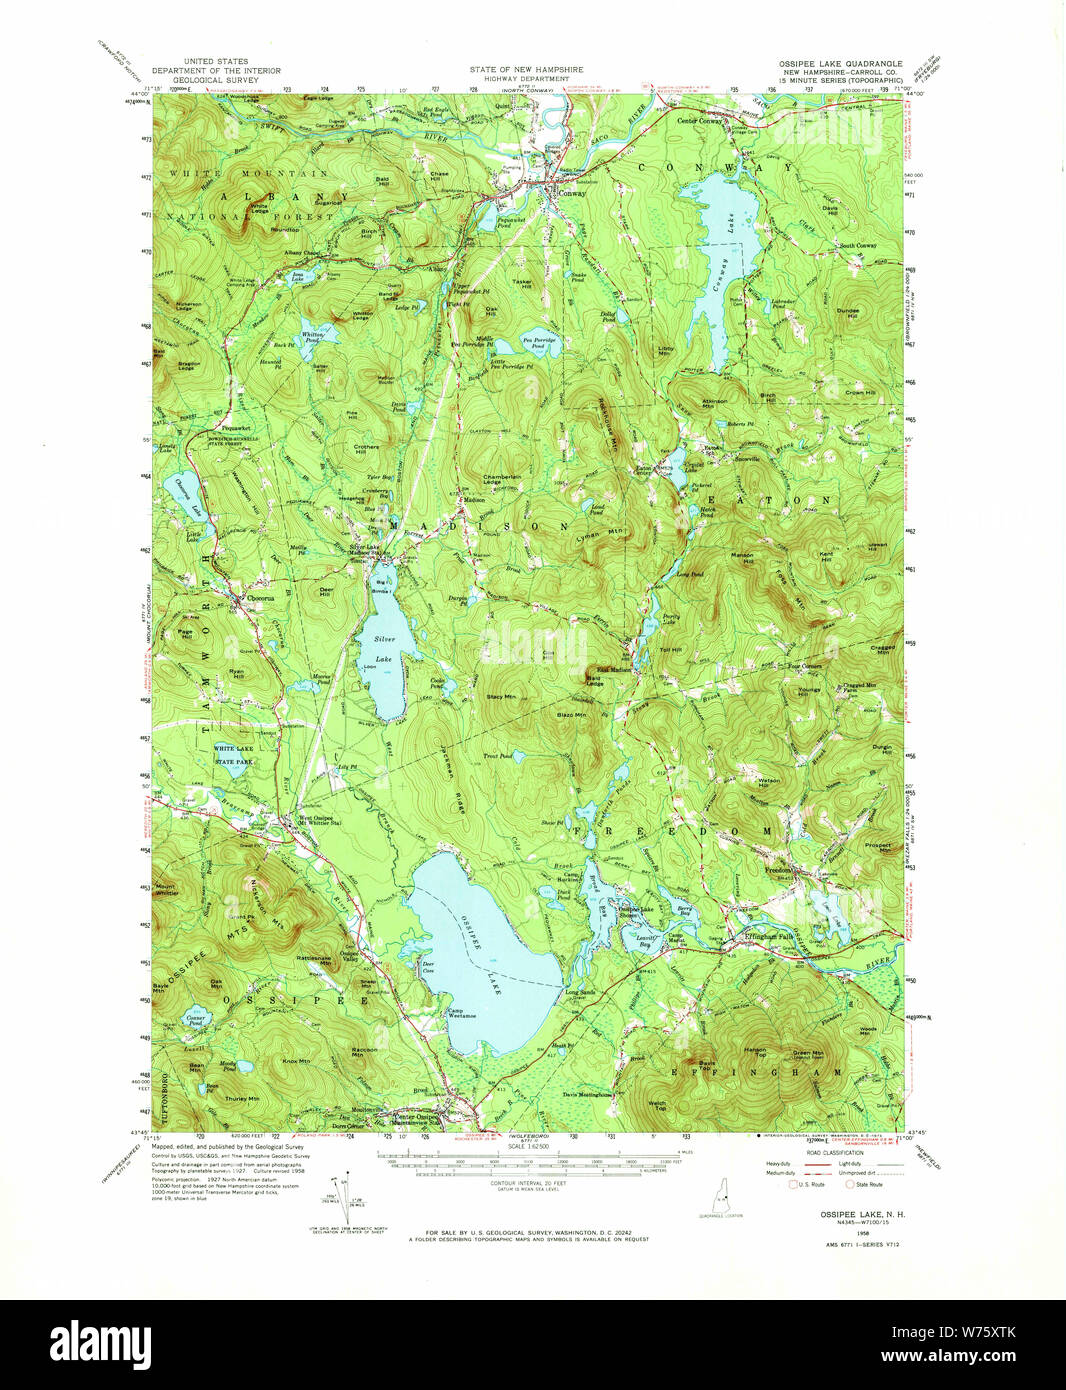 newfound lake nh map Nh Lake Cut Out Stock Images Pictures Alamy newfound lake nh map